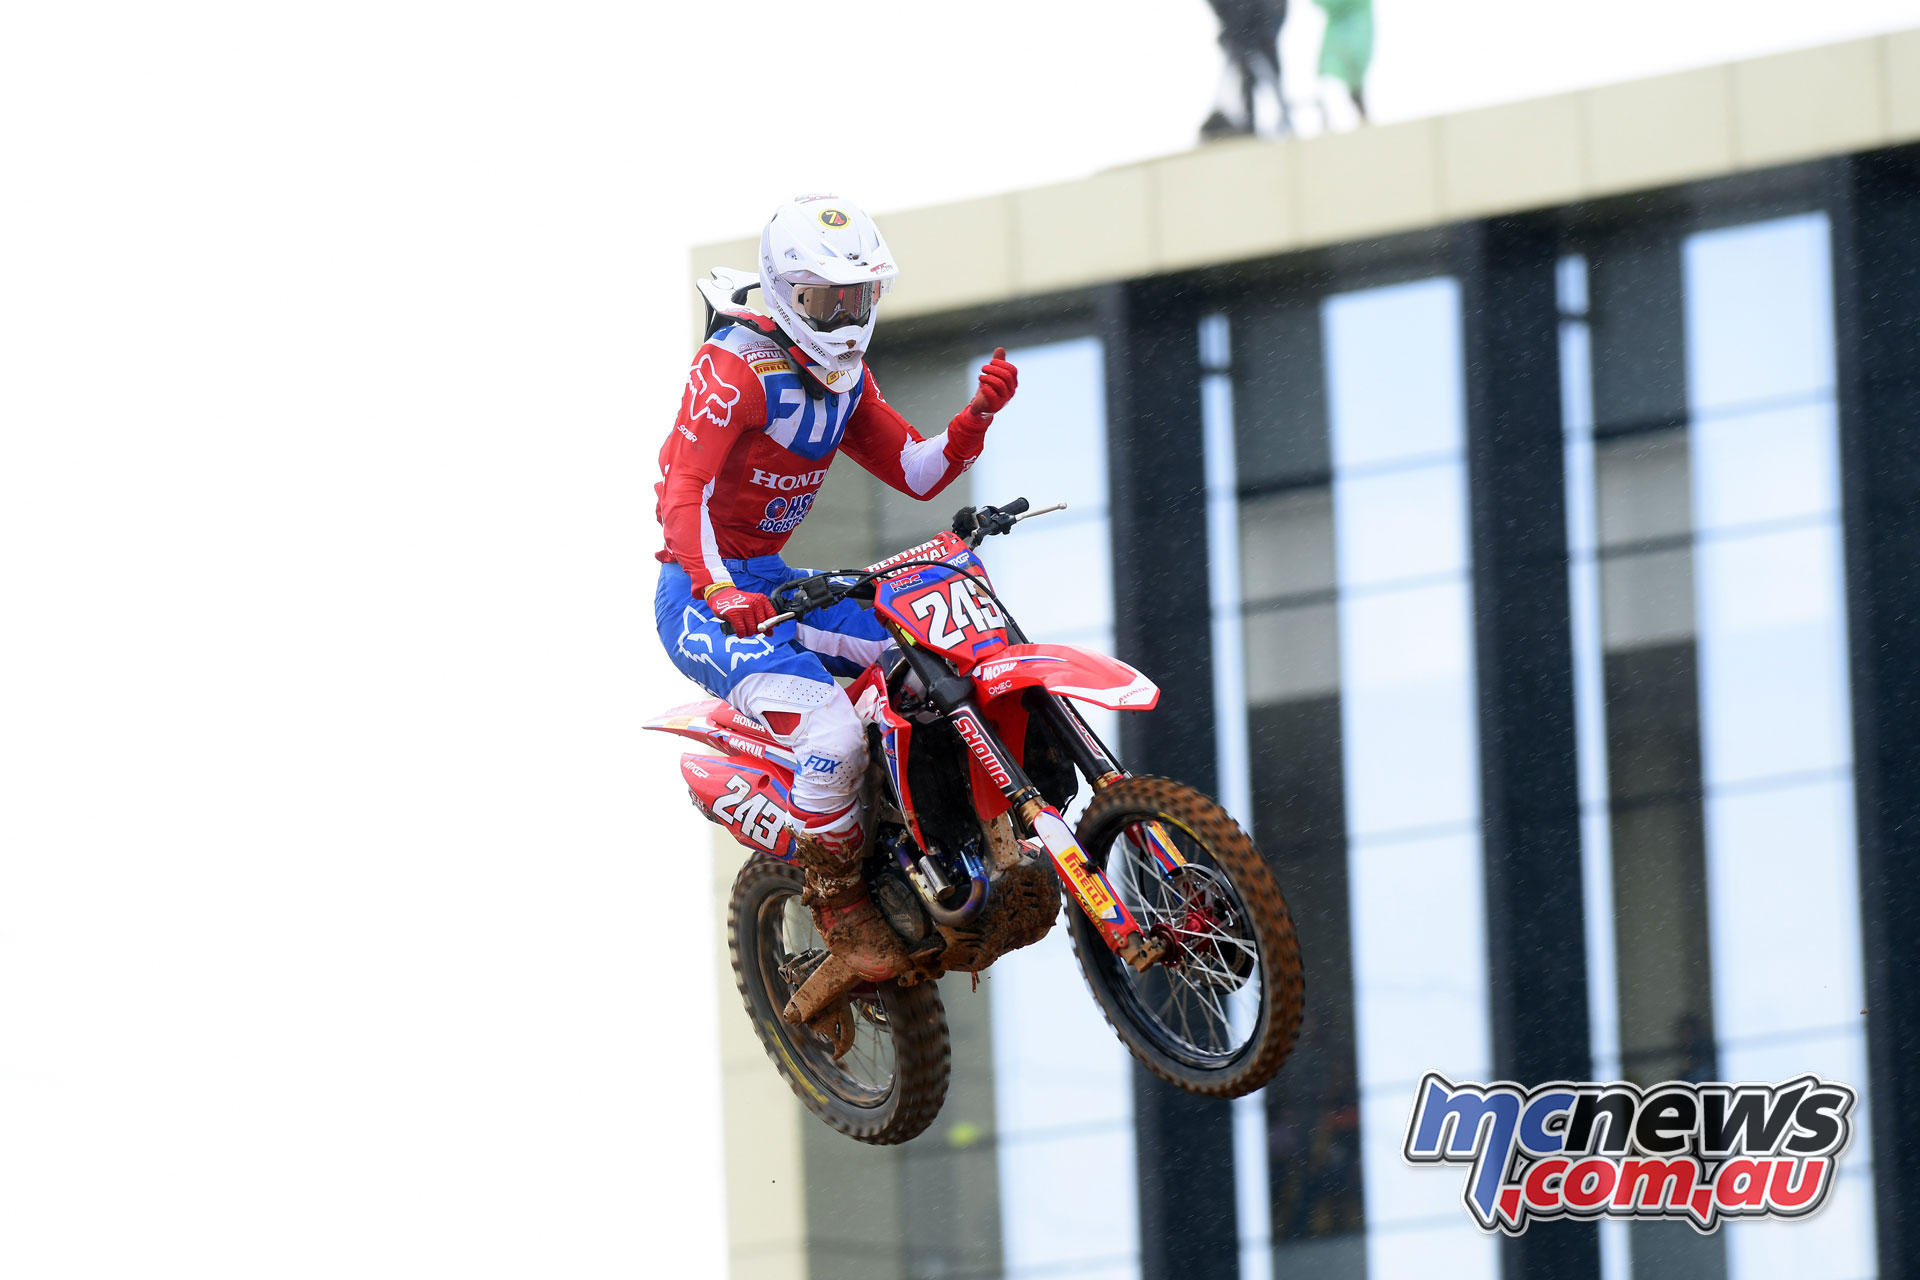 MXGP Indonesia MX Gajser finish